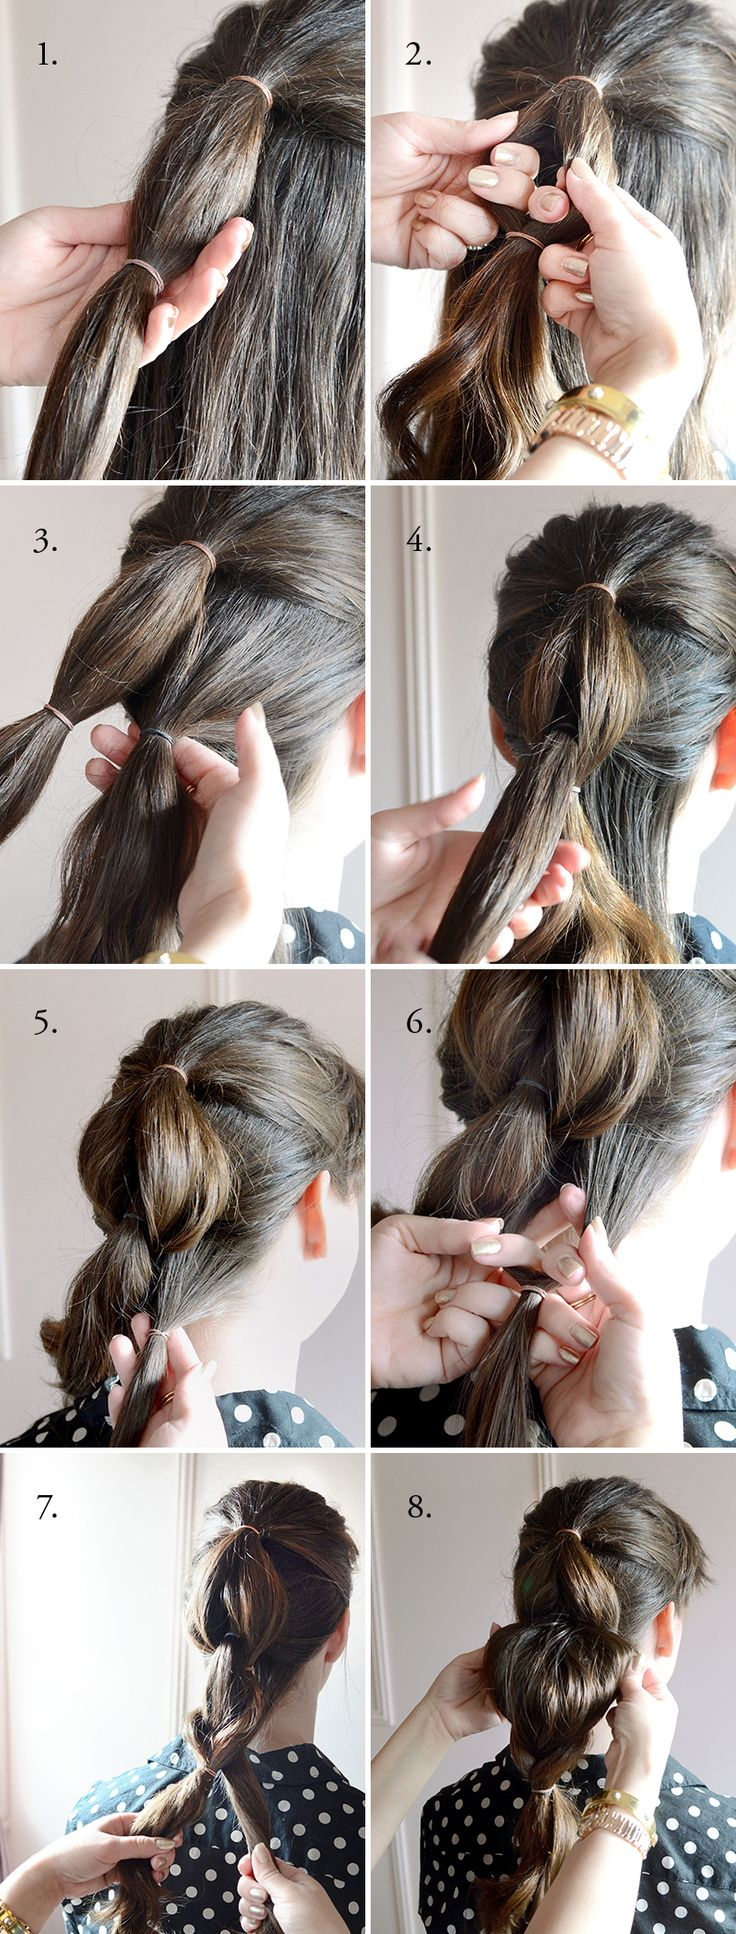 Looped Braid Hair Tutorial | Camille Styles - This is not a braid but looks just as chic and is so easy.